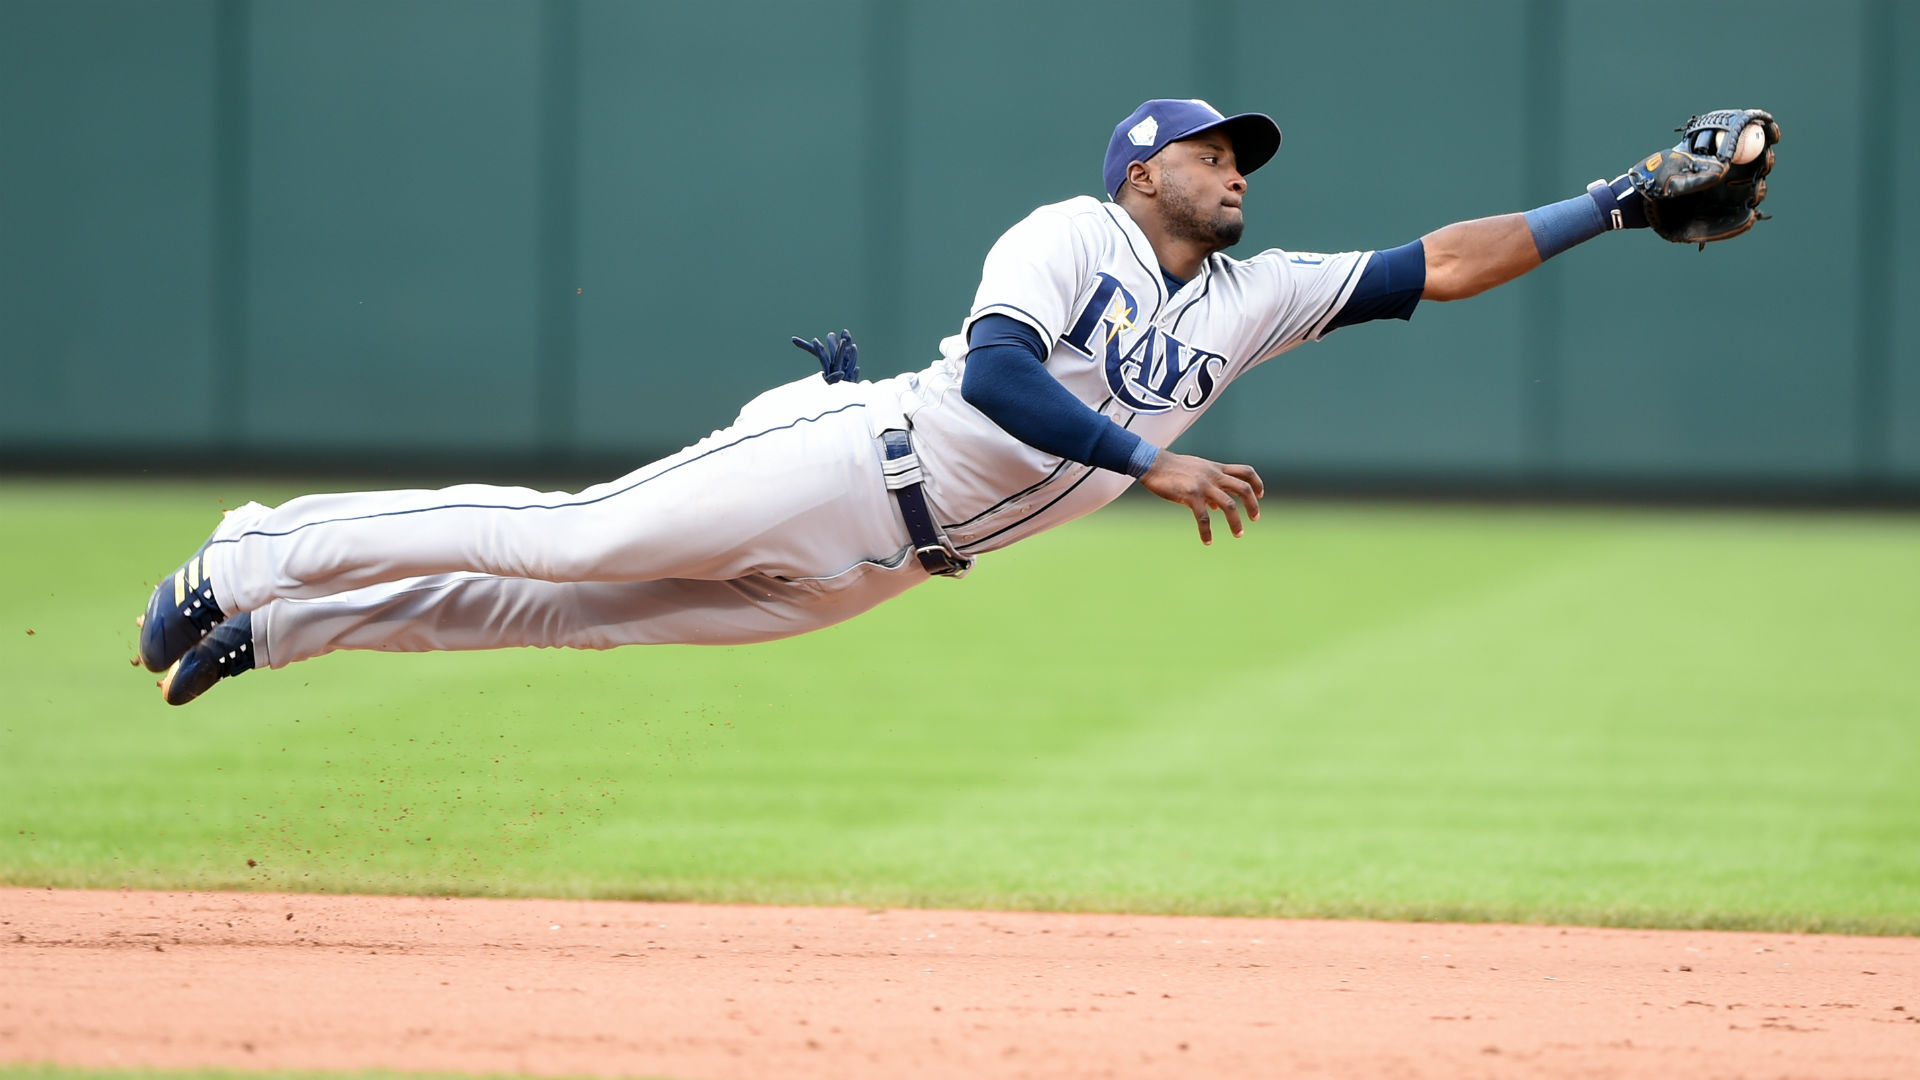 MLB trade rumors: Pirates complete another deal with Rays, add SS Adeiny Hechavarria